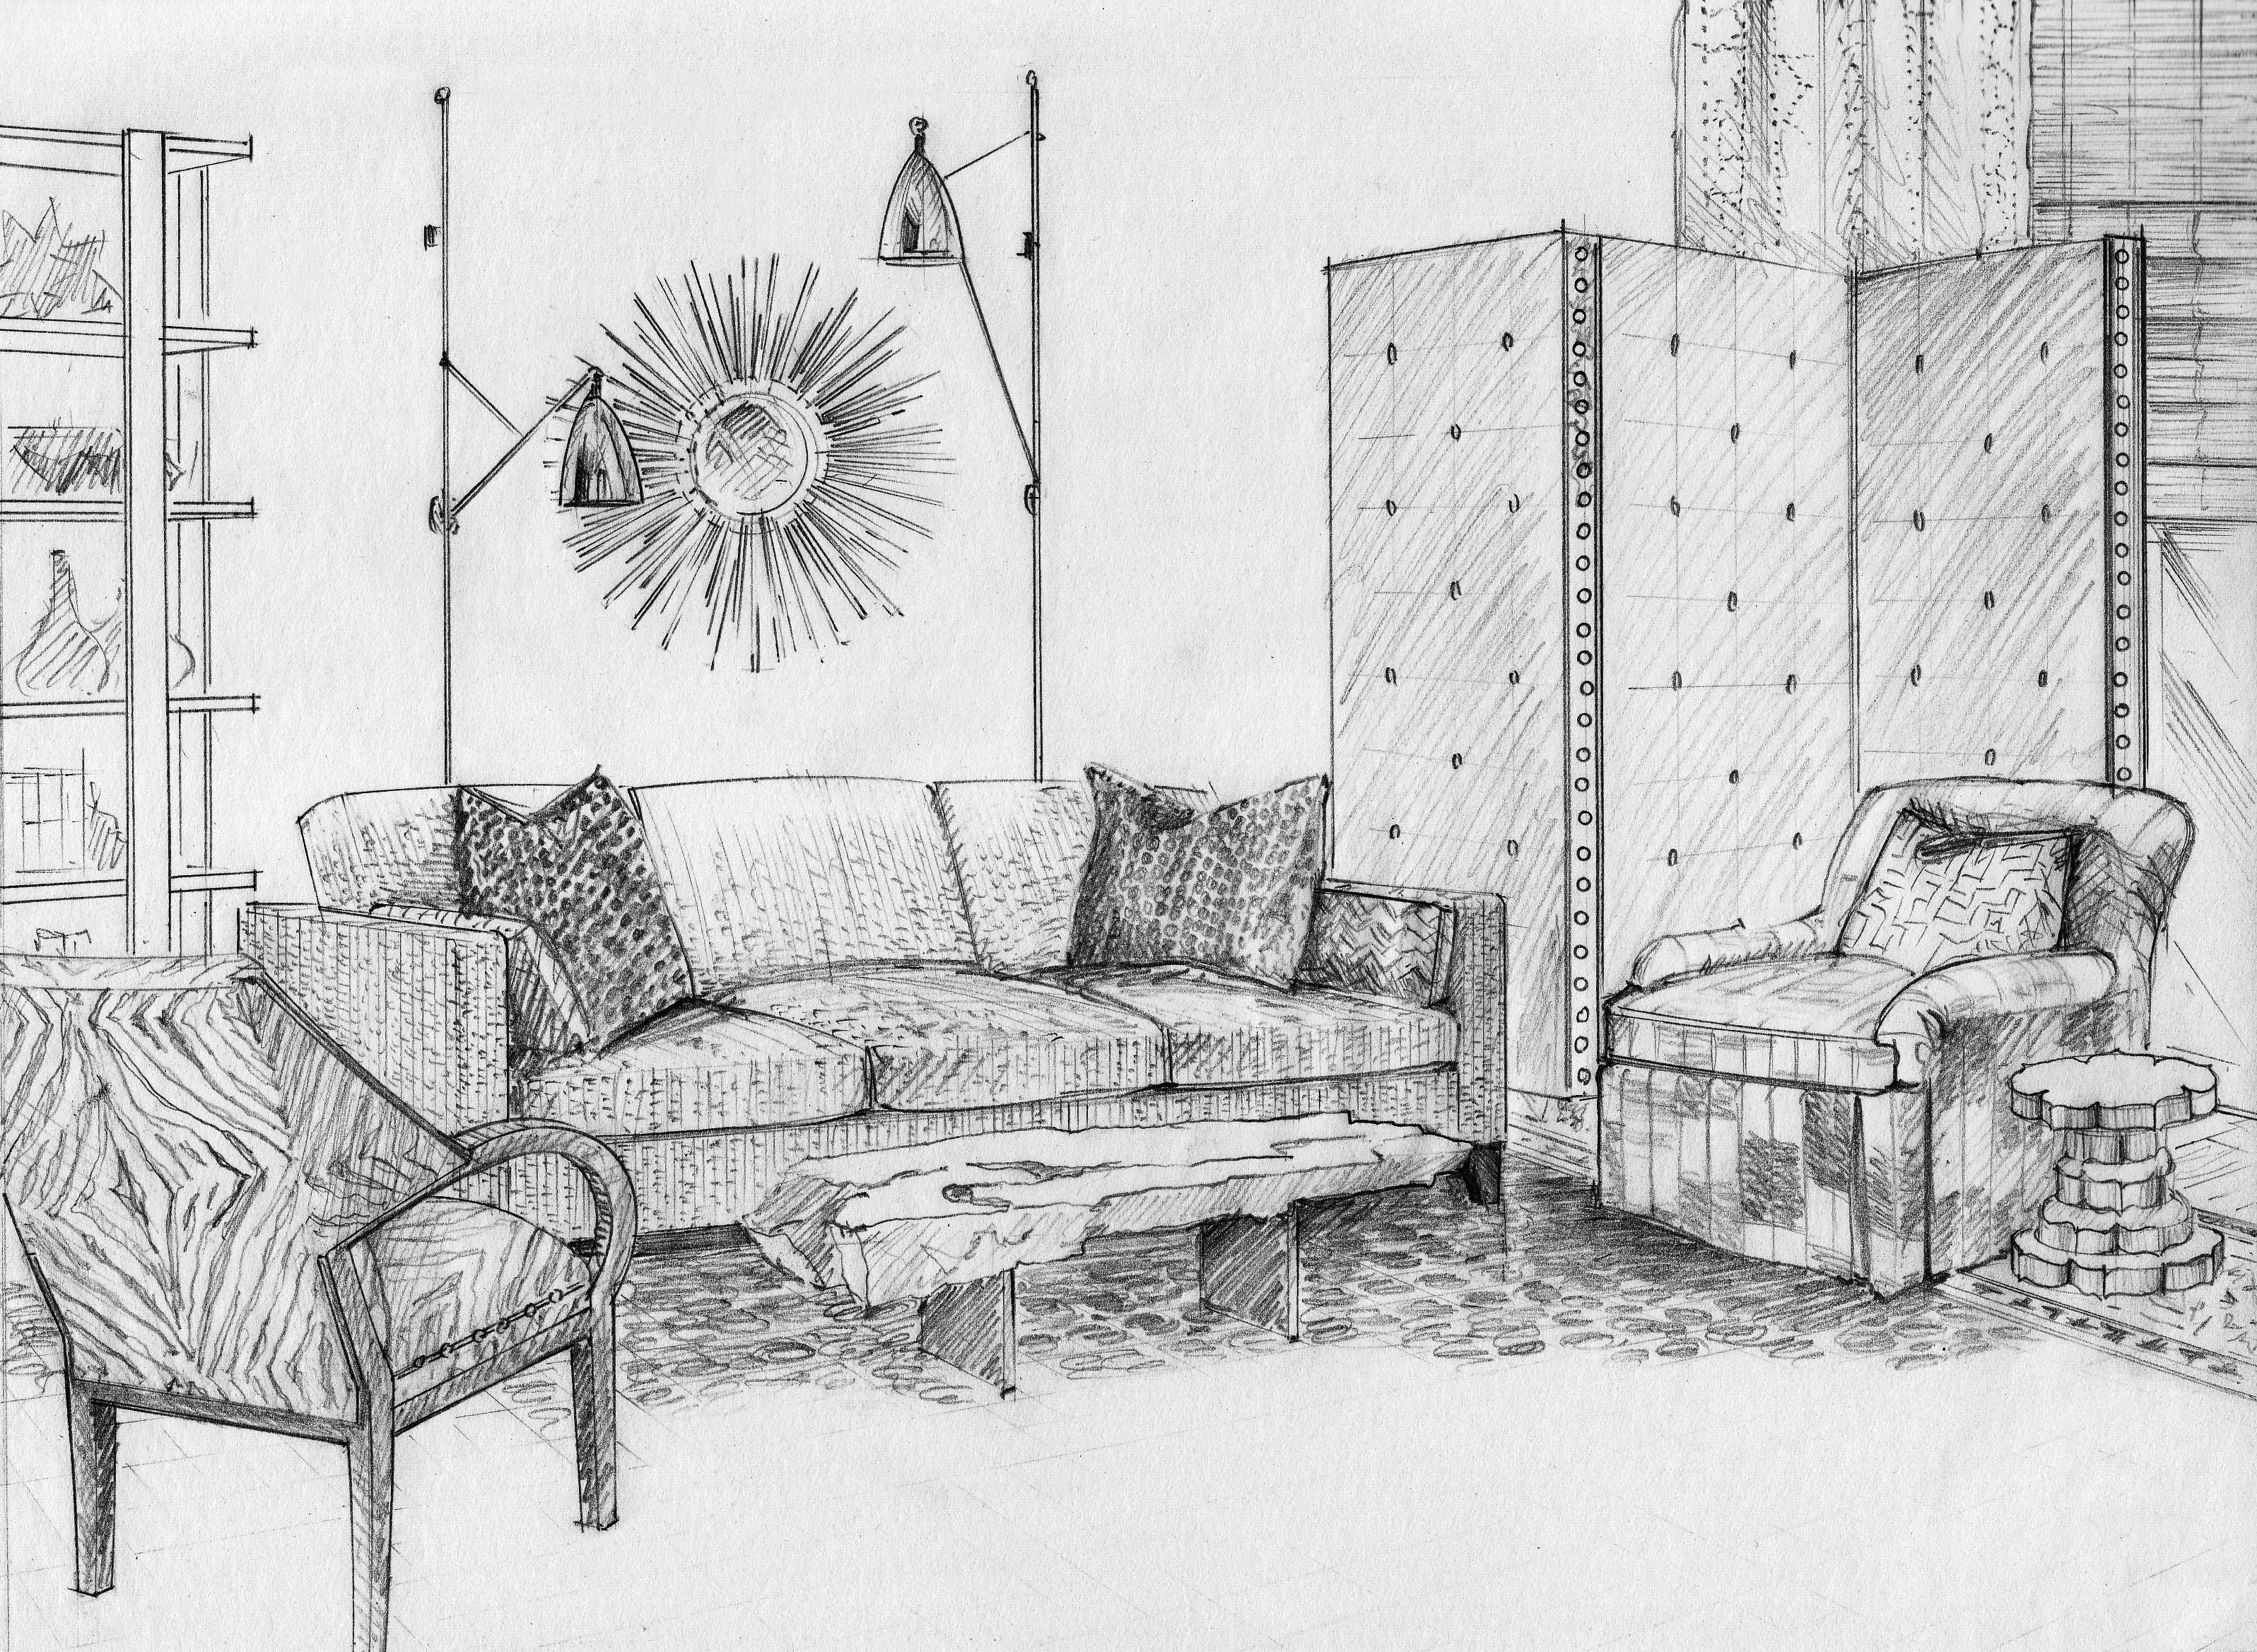 Sketch By Designants Llc Design By Lisa Melone Cloughen Interiors